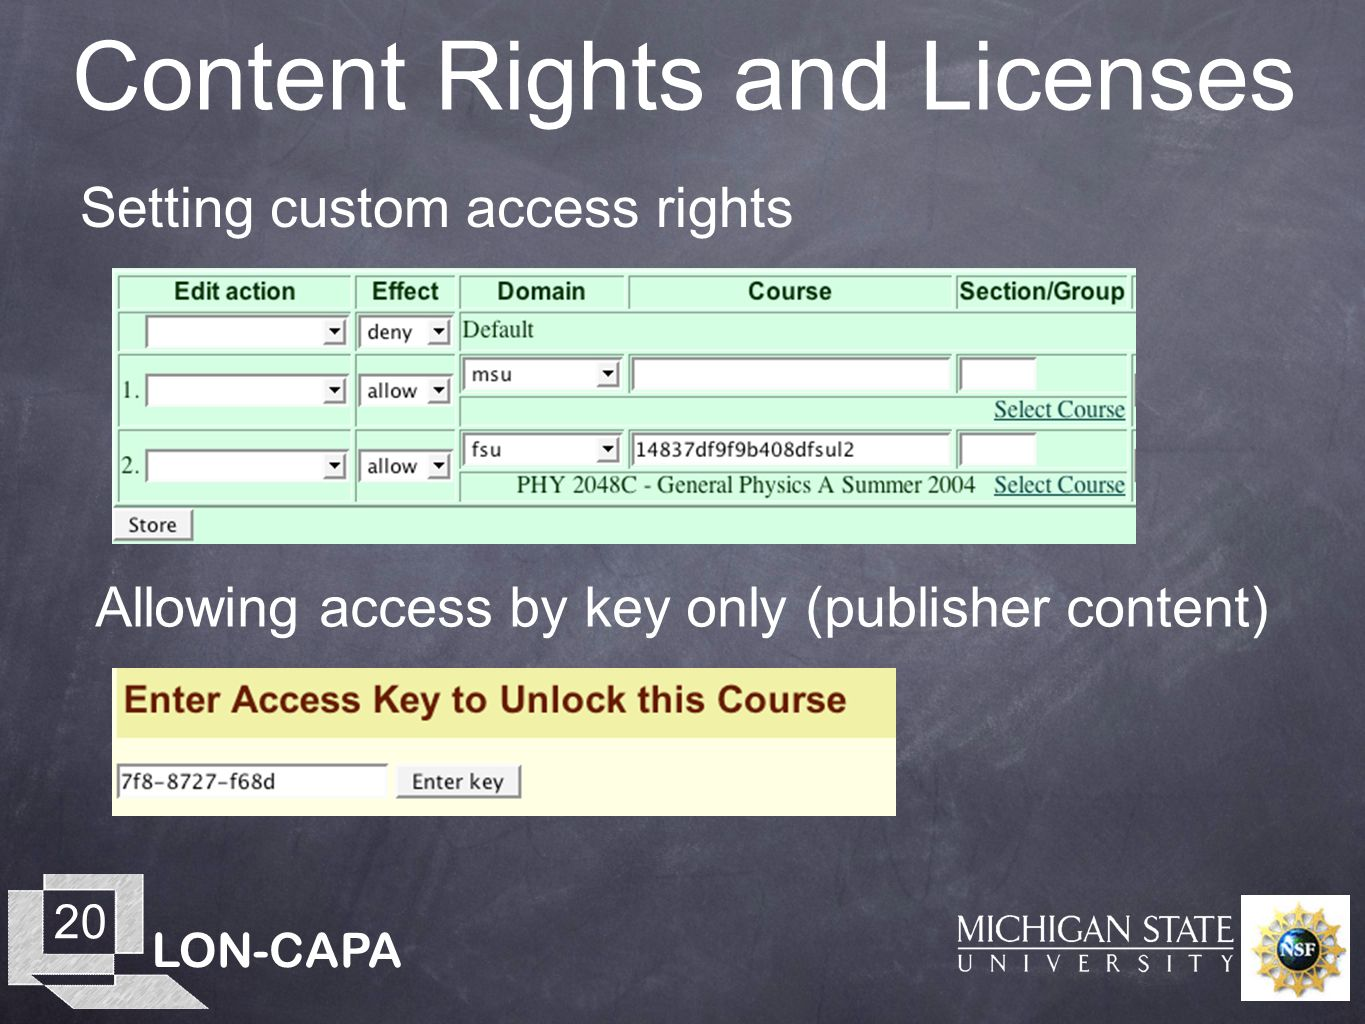 LON-CAPA 20 Content Rights and Licenses Setting custom access rights Allowing access by key only (publisher content)